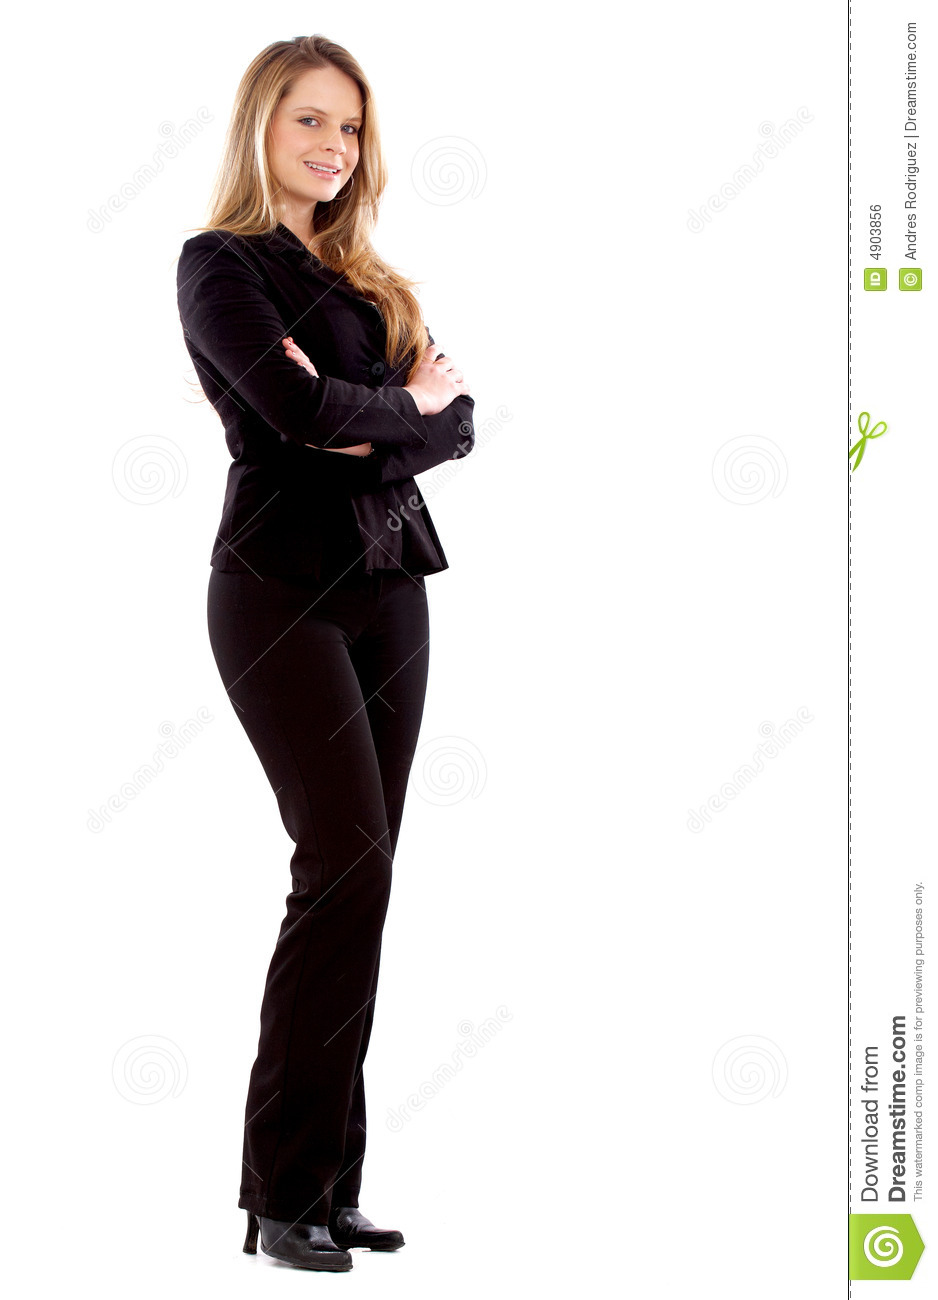 business-woman-standing-4903856.jpg